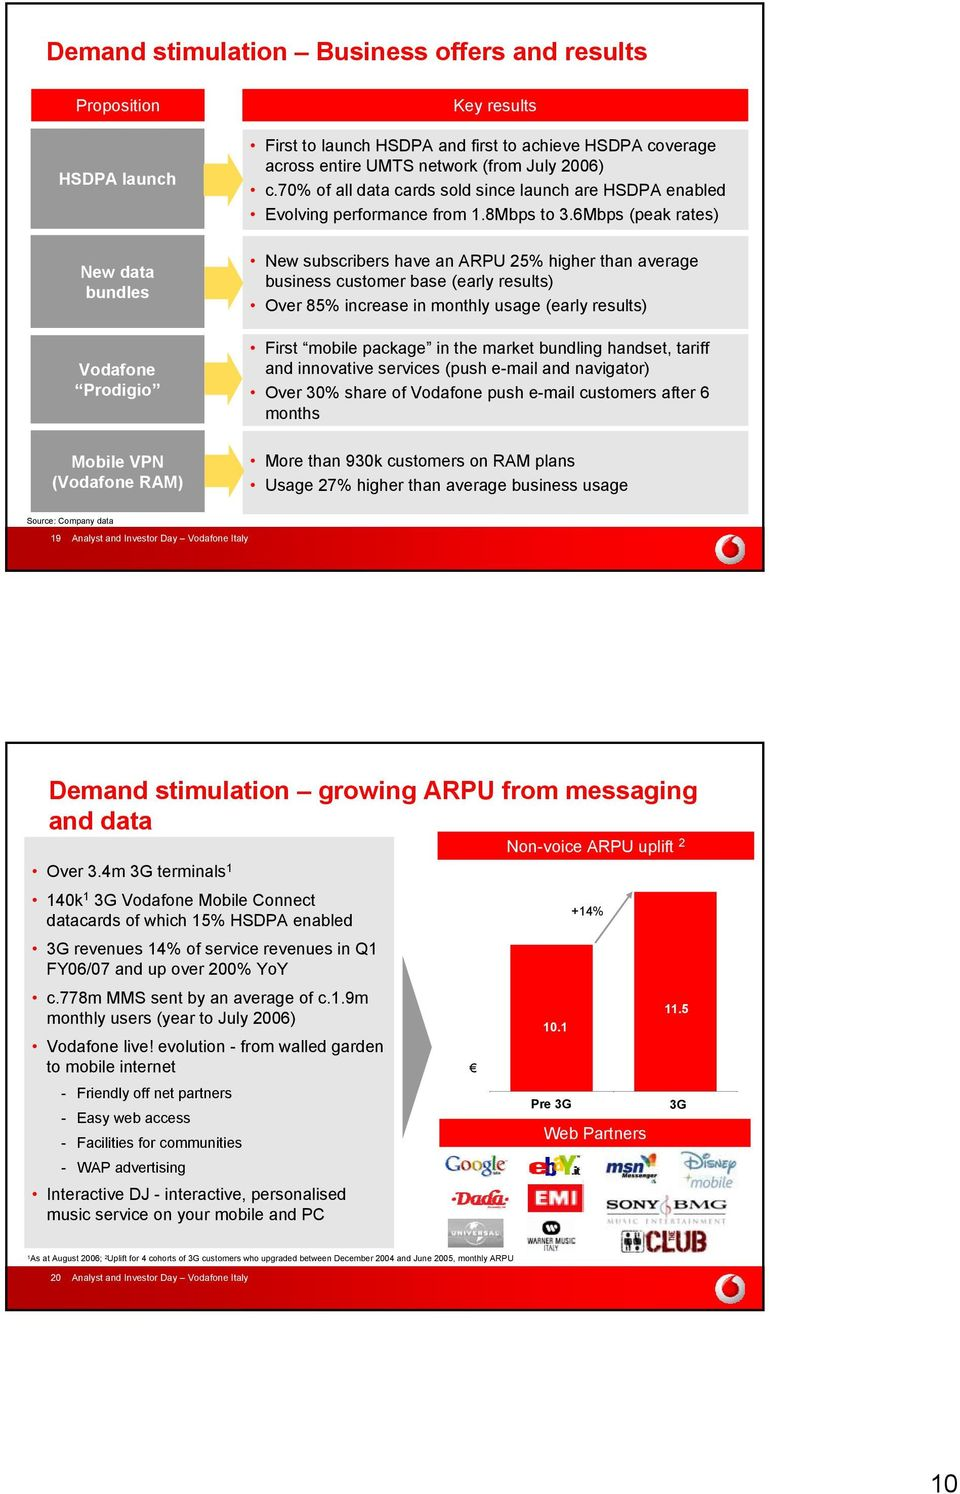 6Mbps (peak rates) New data bundles Vodafone Prodigio New subscribers have an ARPU 25% higher than average business customer base (early results) Over 85% increase in monthly usage (early results)